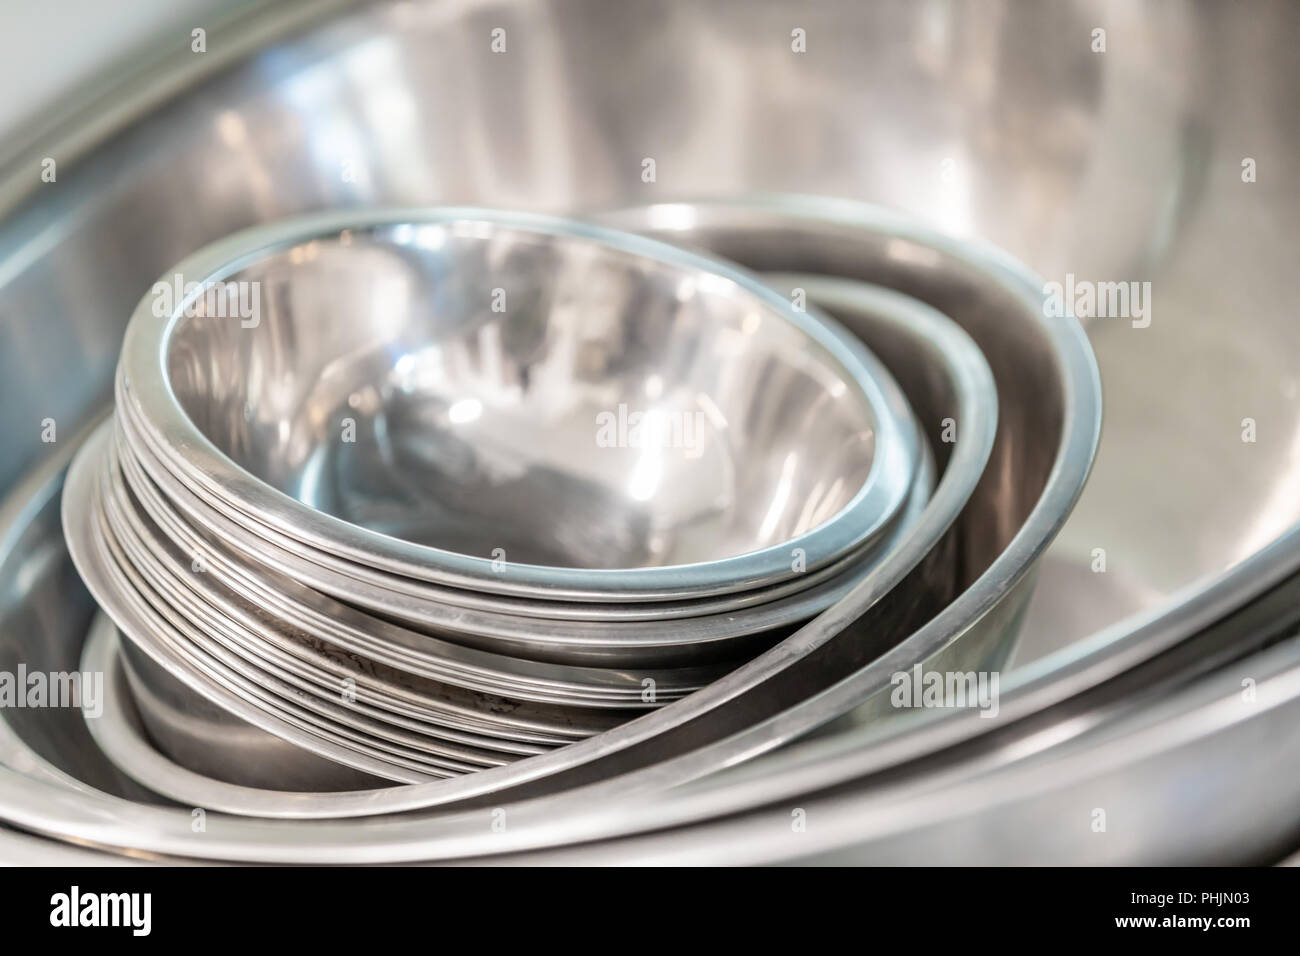 detail image of a set of nesting stainless steel bowls in a commercial kitchen - Stock Image